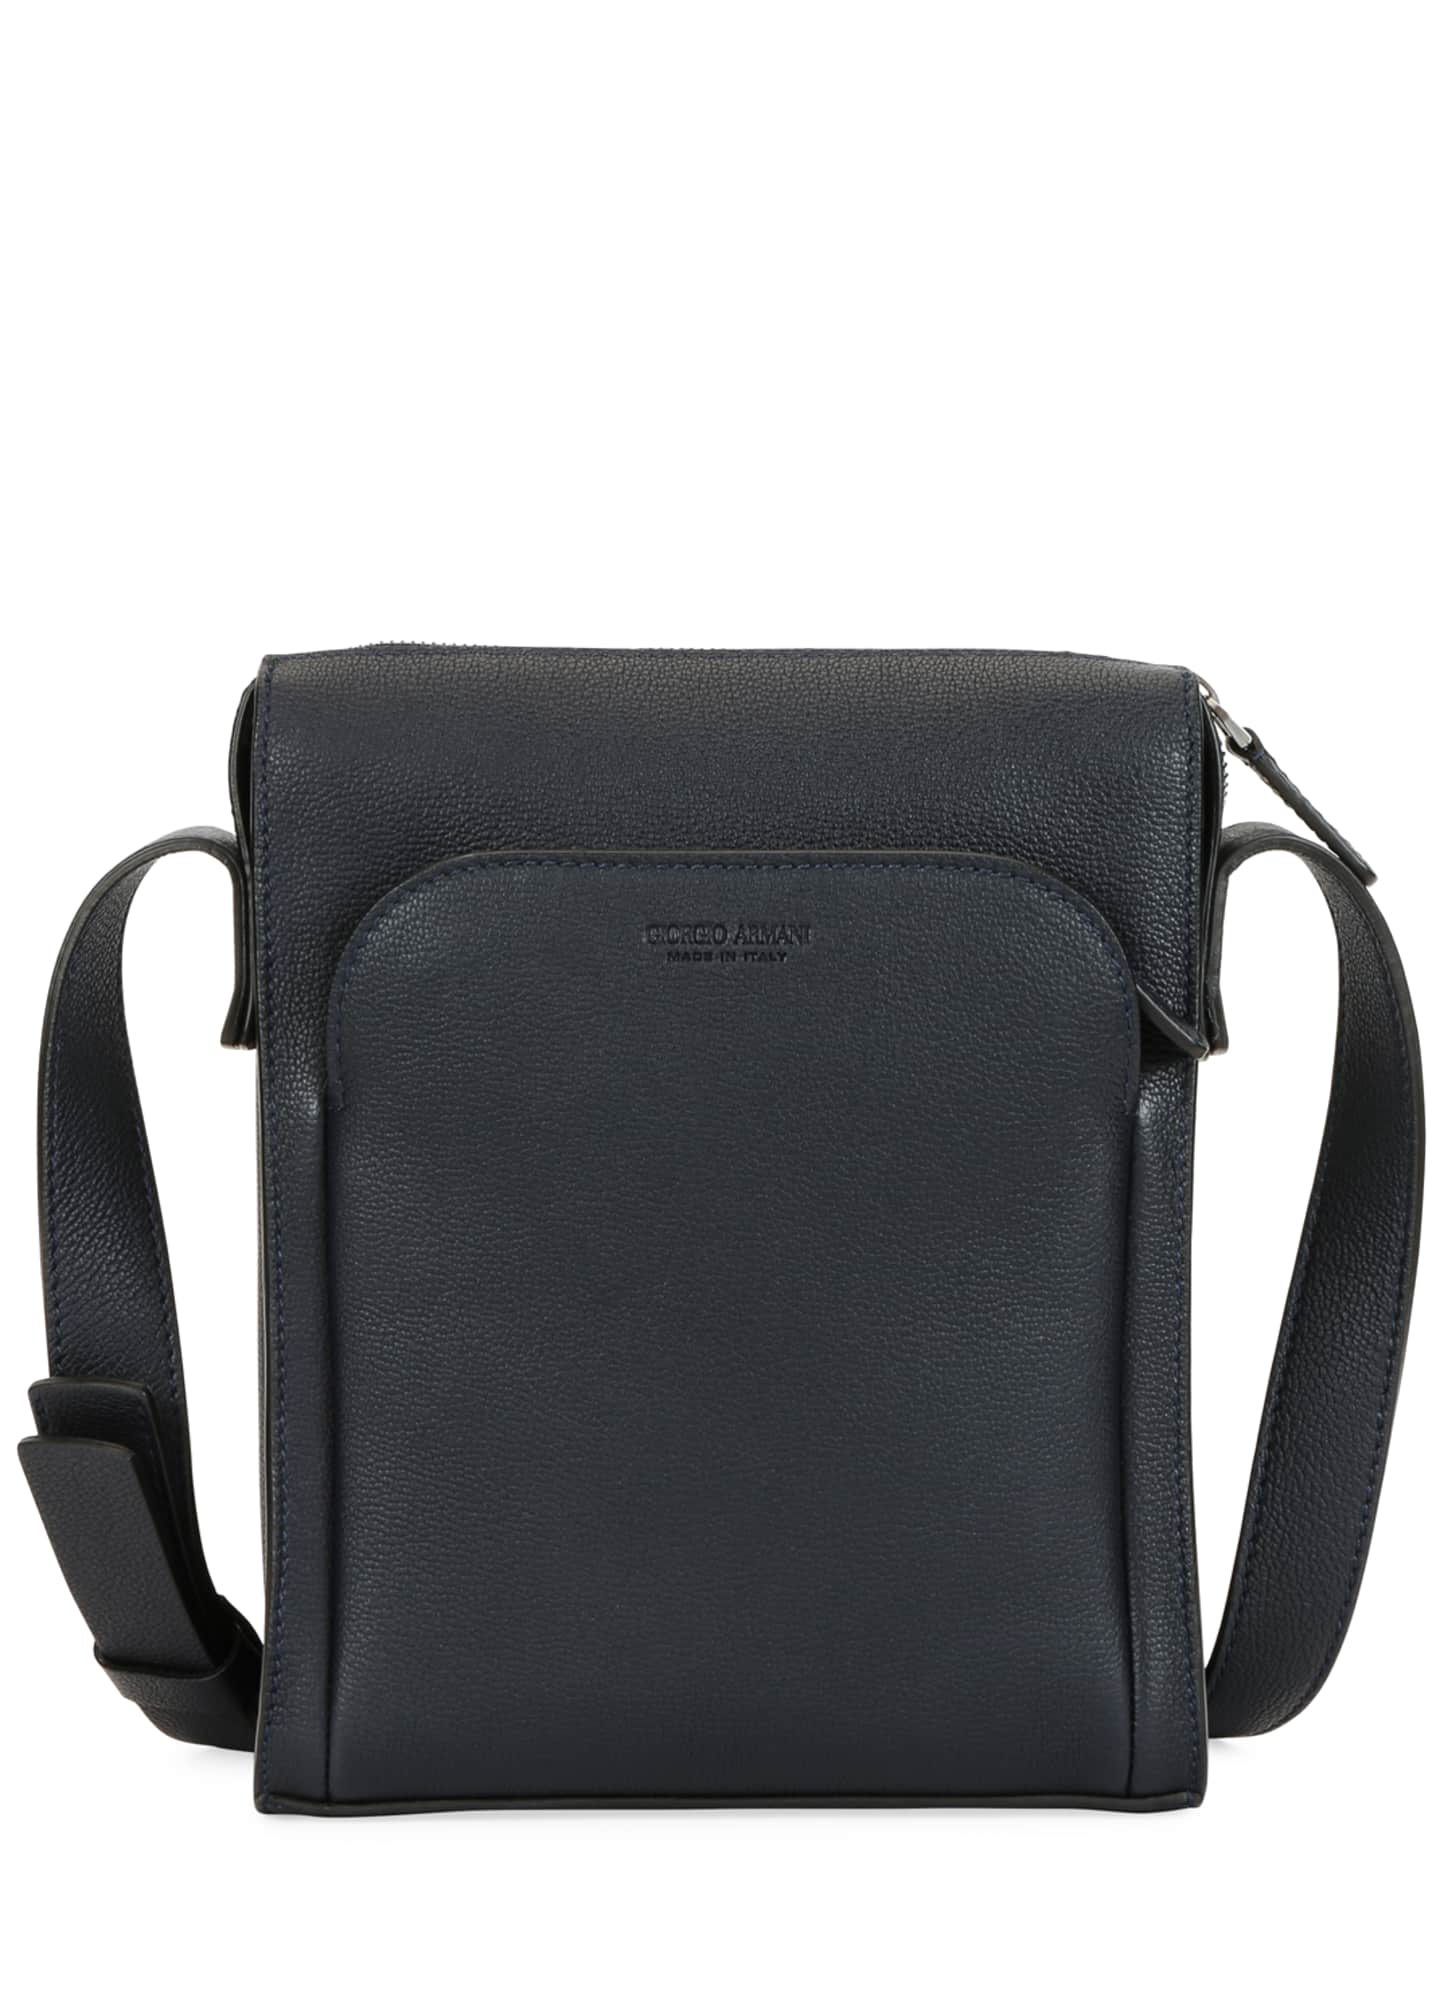 Image 1 of 4: Men's Tumbled Calf Leather Crossbody Bag